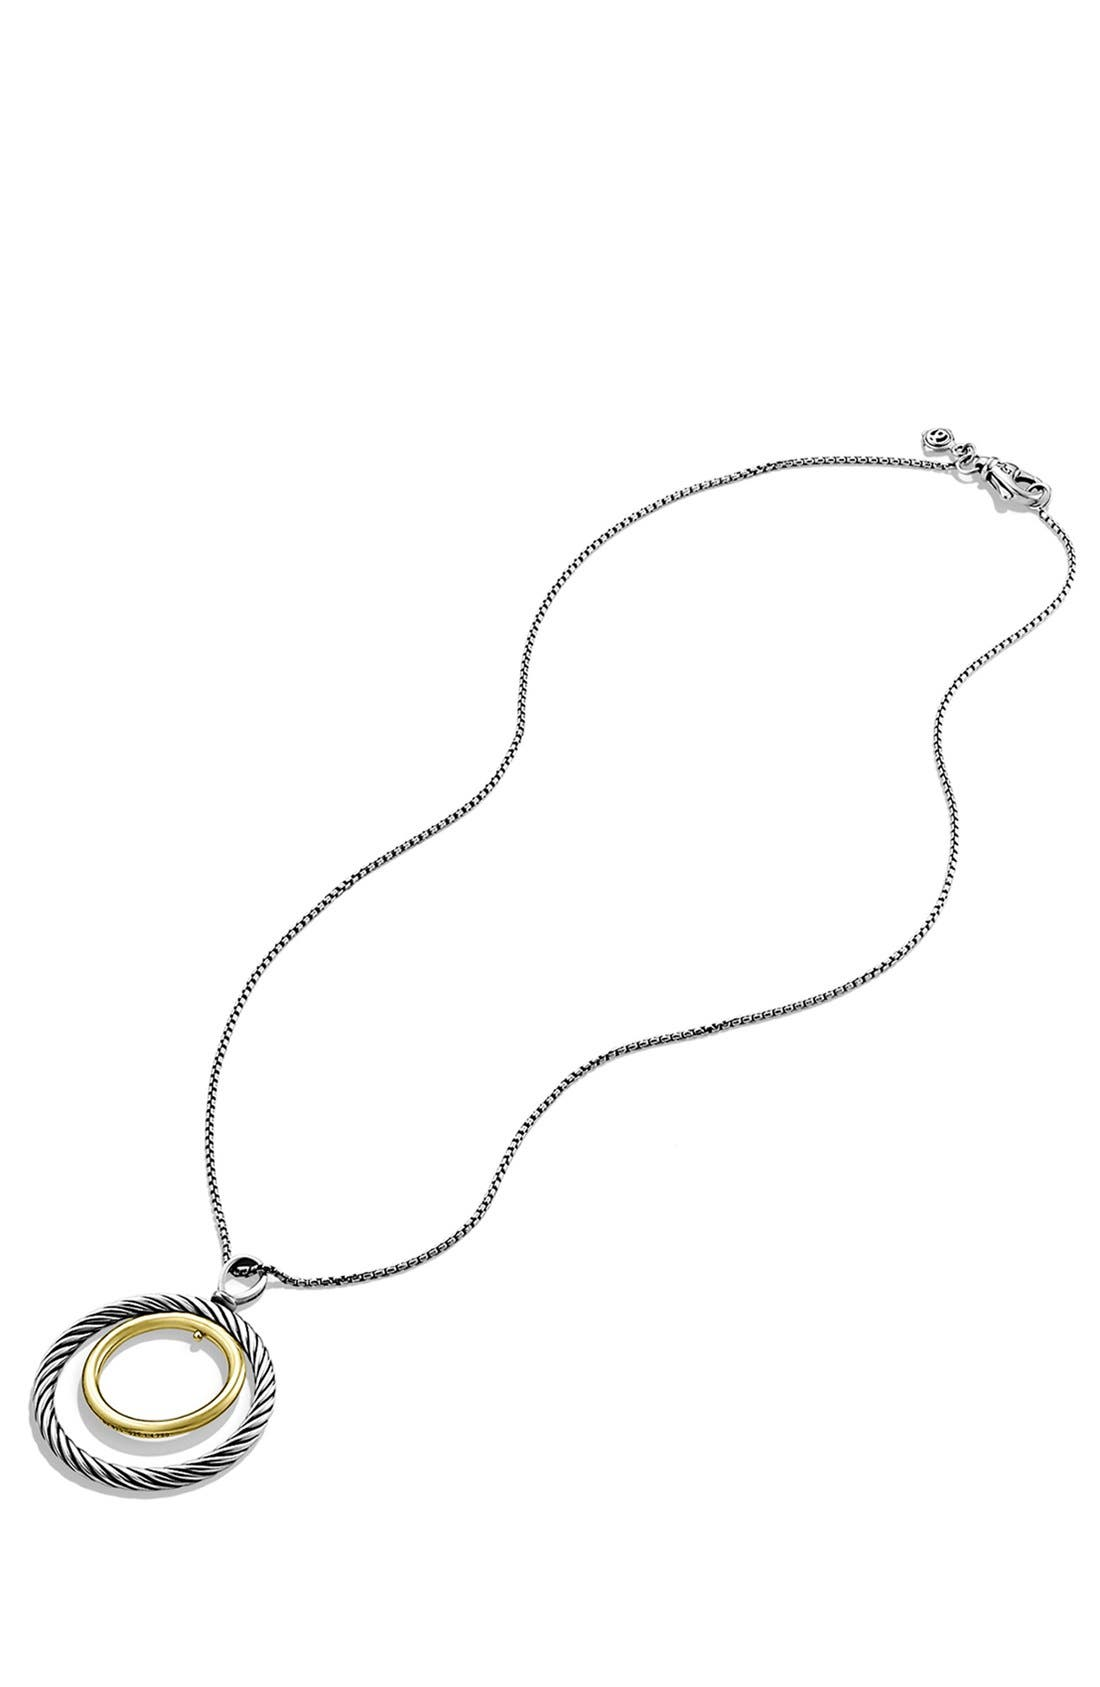 'Mobile' Pendant with Gold on Chain,                             Alternate thumbnail 2, color,                             Two Tone